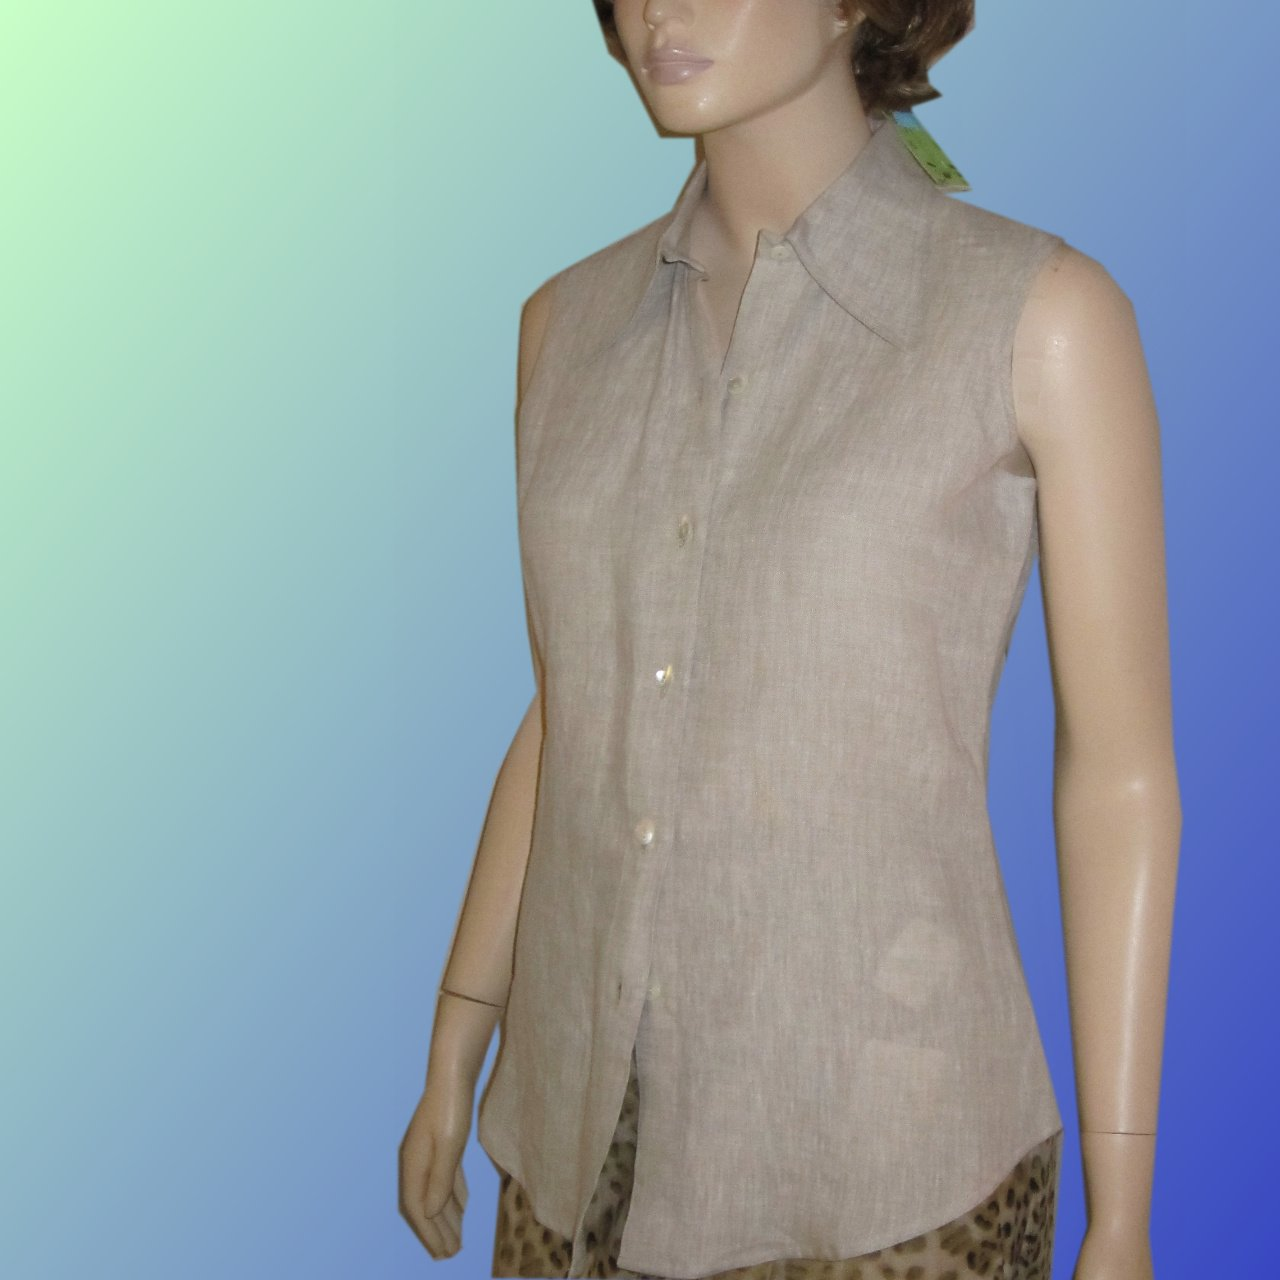 sz XS VAN TISSE Natural Stone Linen Sleeveless Blouse $19.99